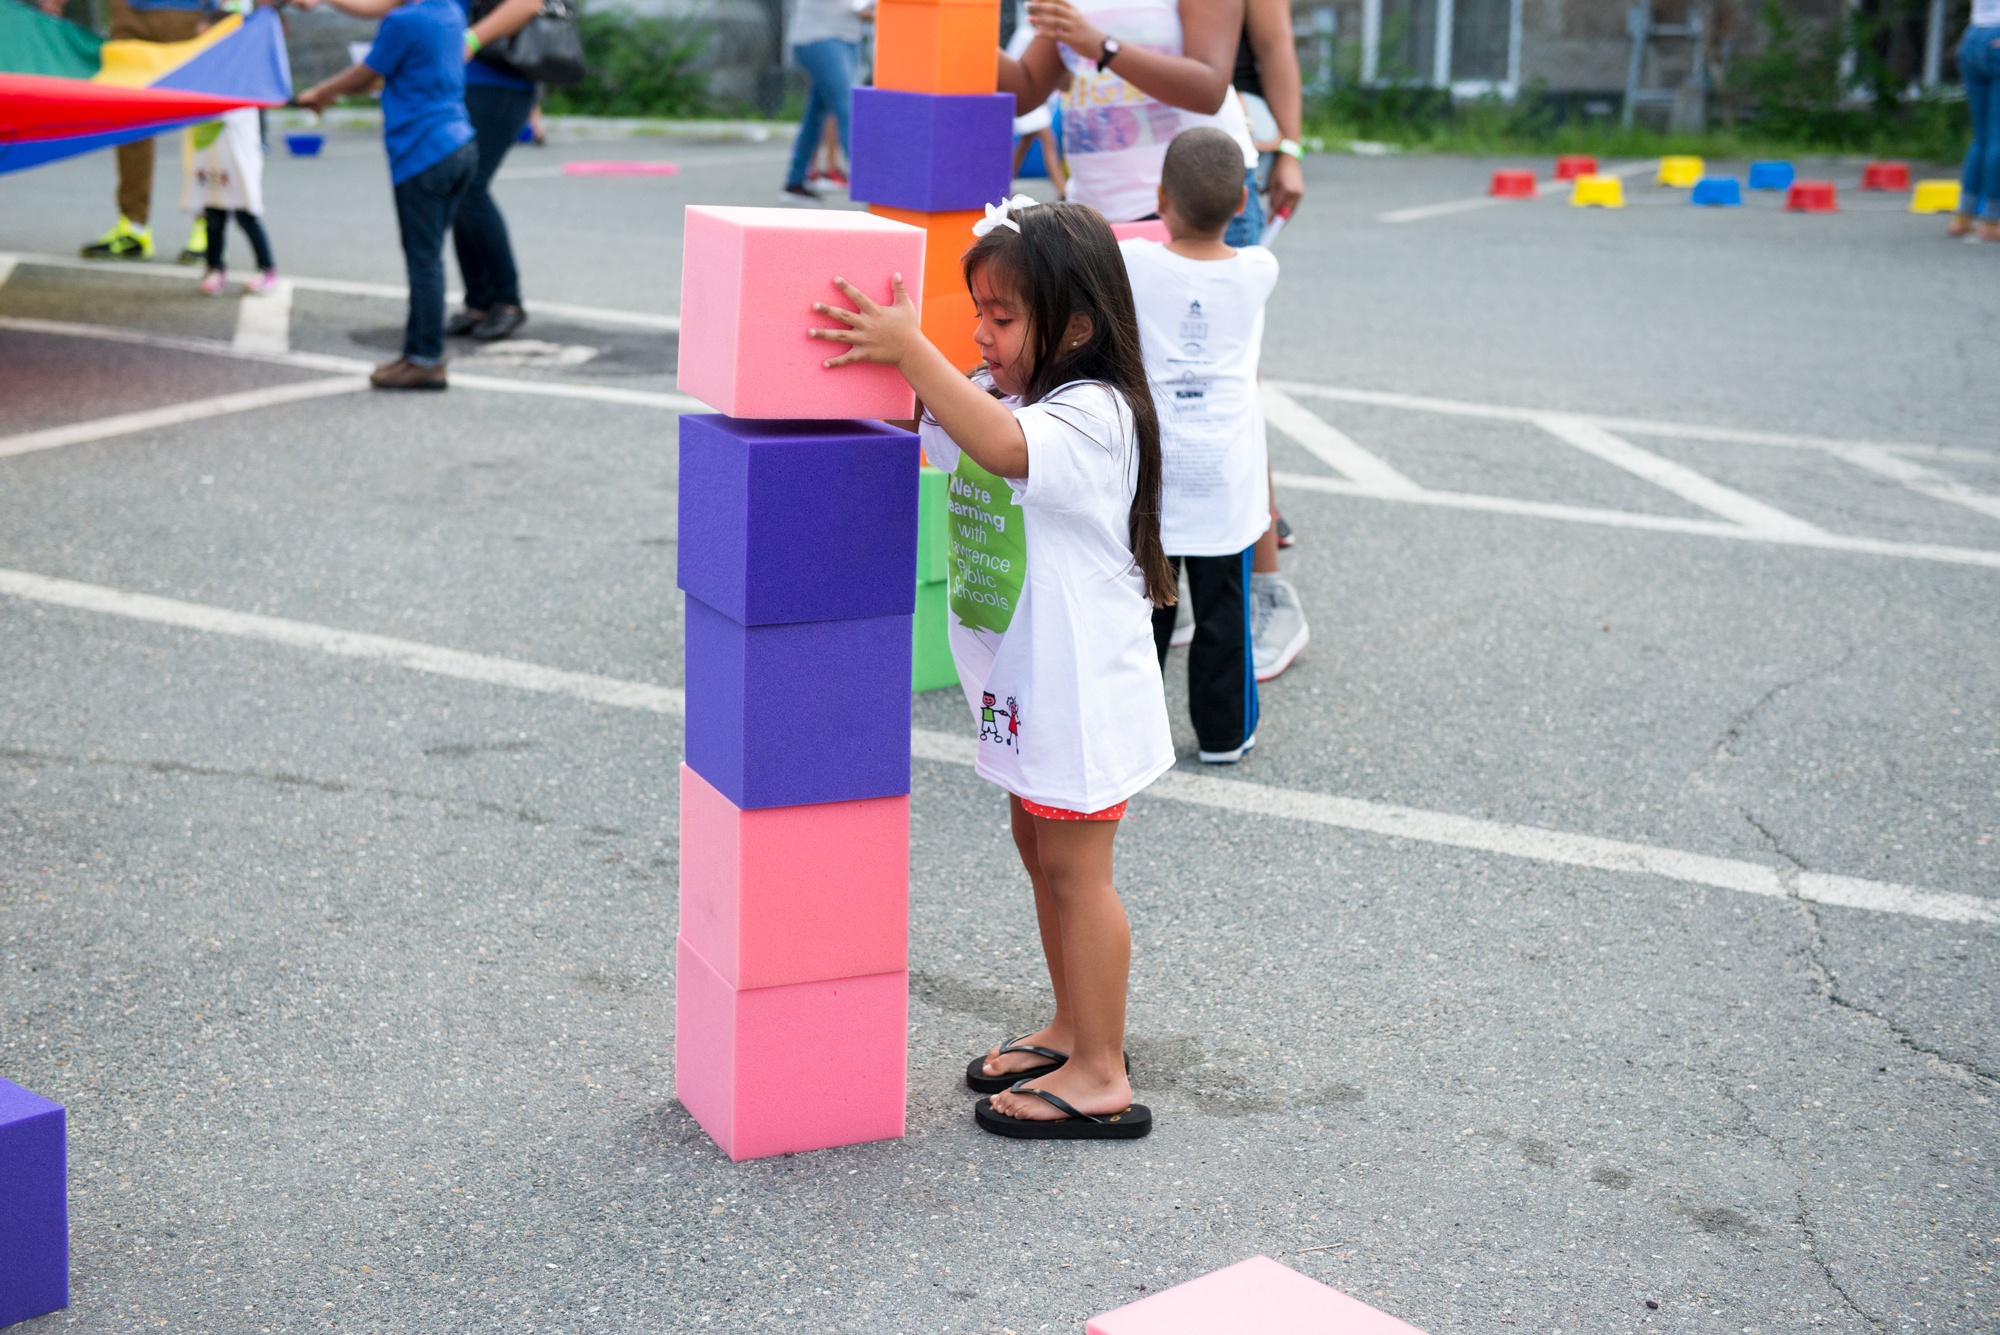 Child stacking big blocks on top of each other